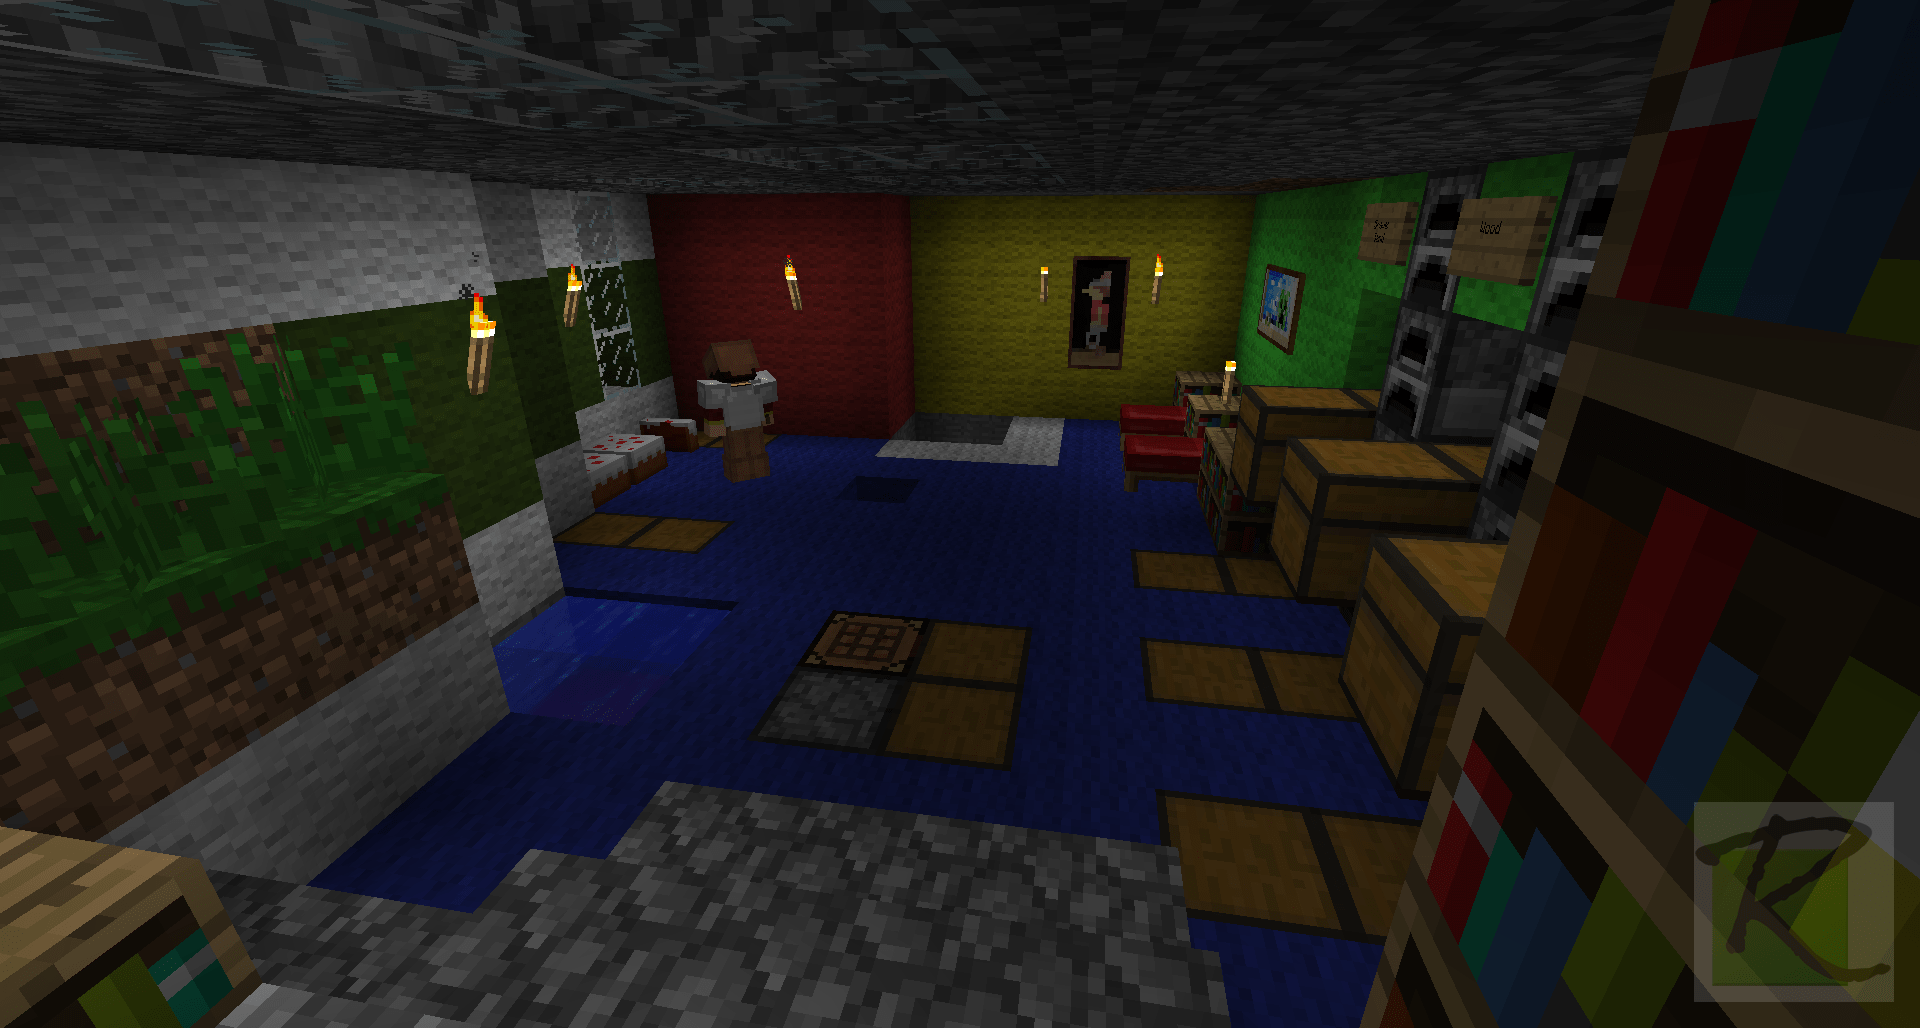 Minecraft interior design cool minecraft interior design for Minecraft house interior living room